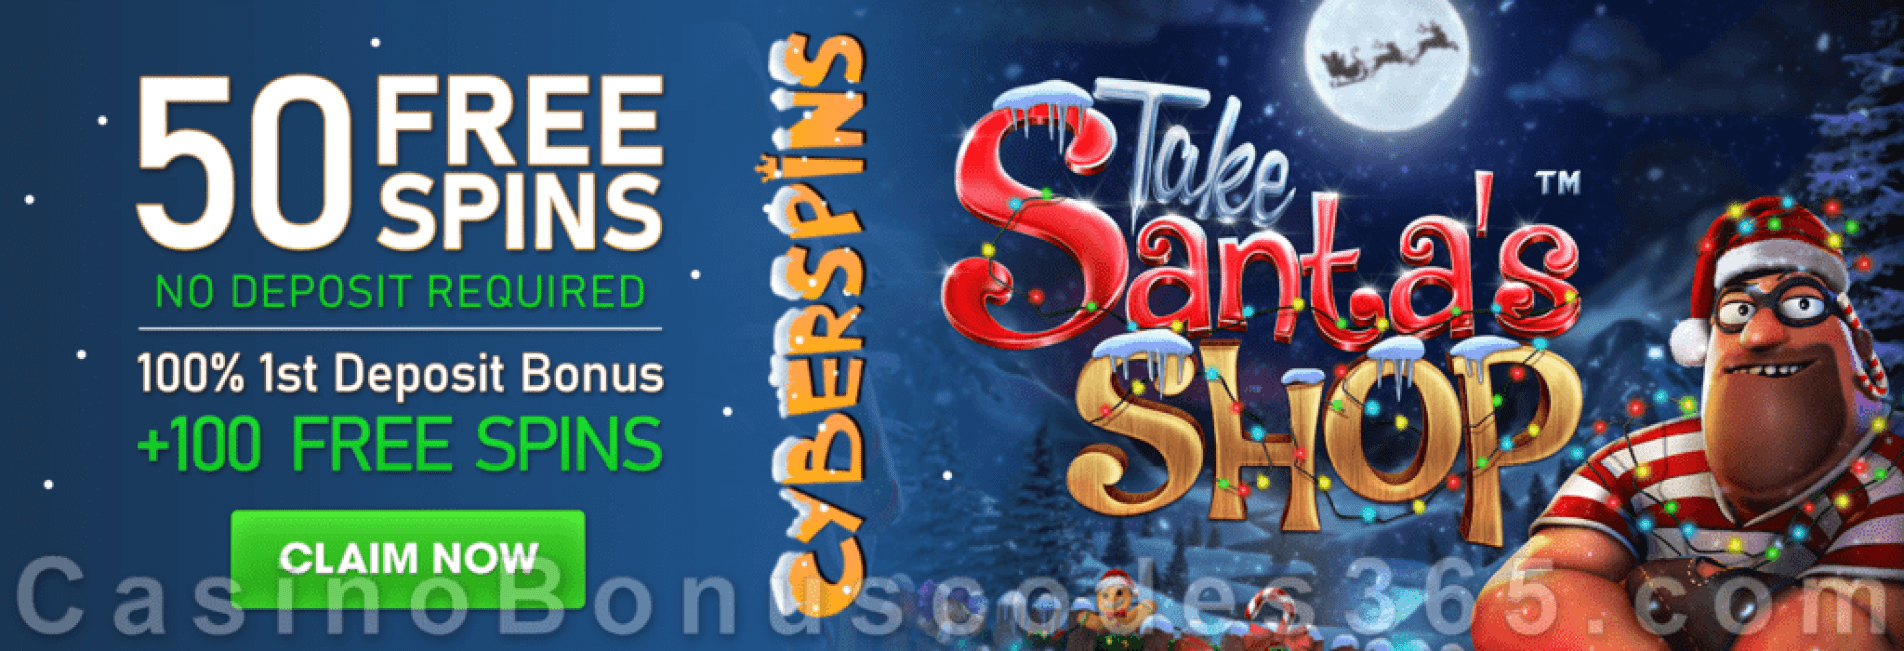 CyberSpins 50 FREE Spins on Betsoft Take Santa's Shop and 100% Match Bonus plus 100 FREE Spins New Players Deal